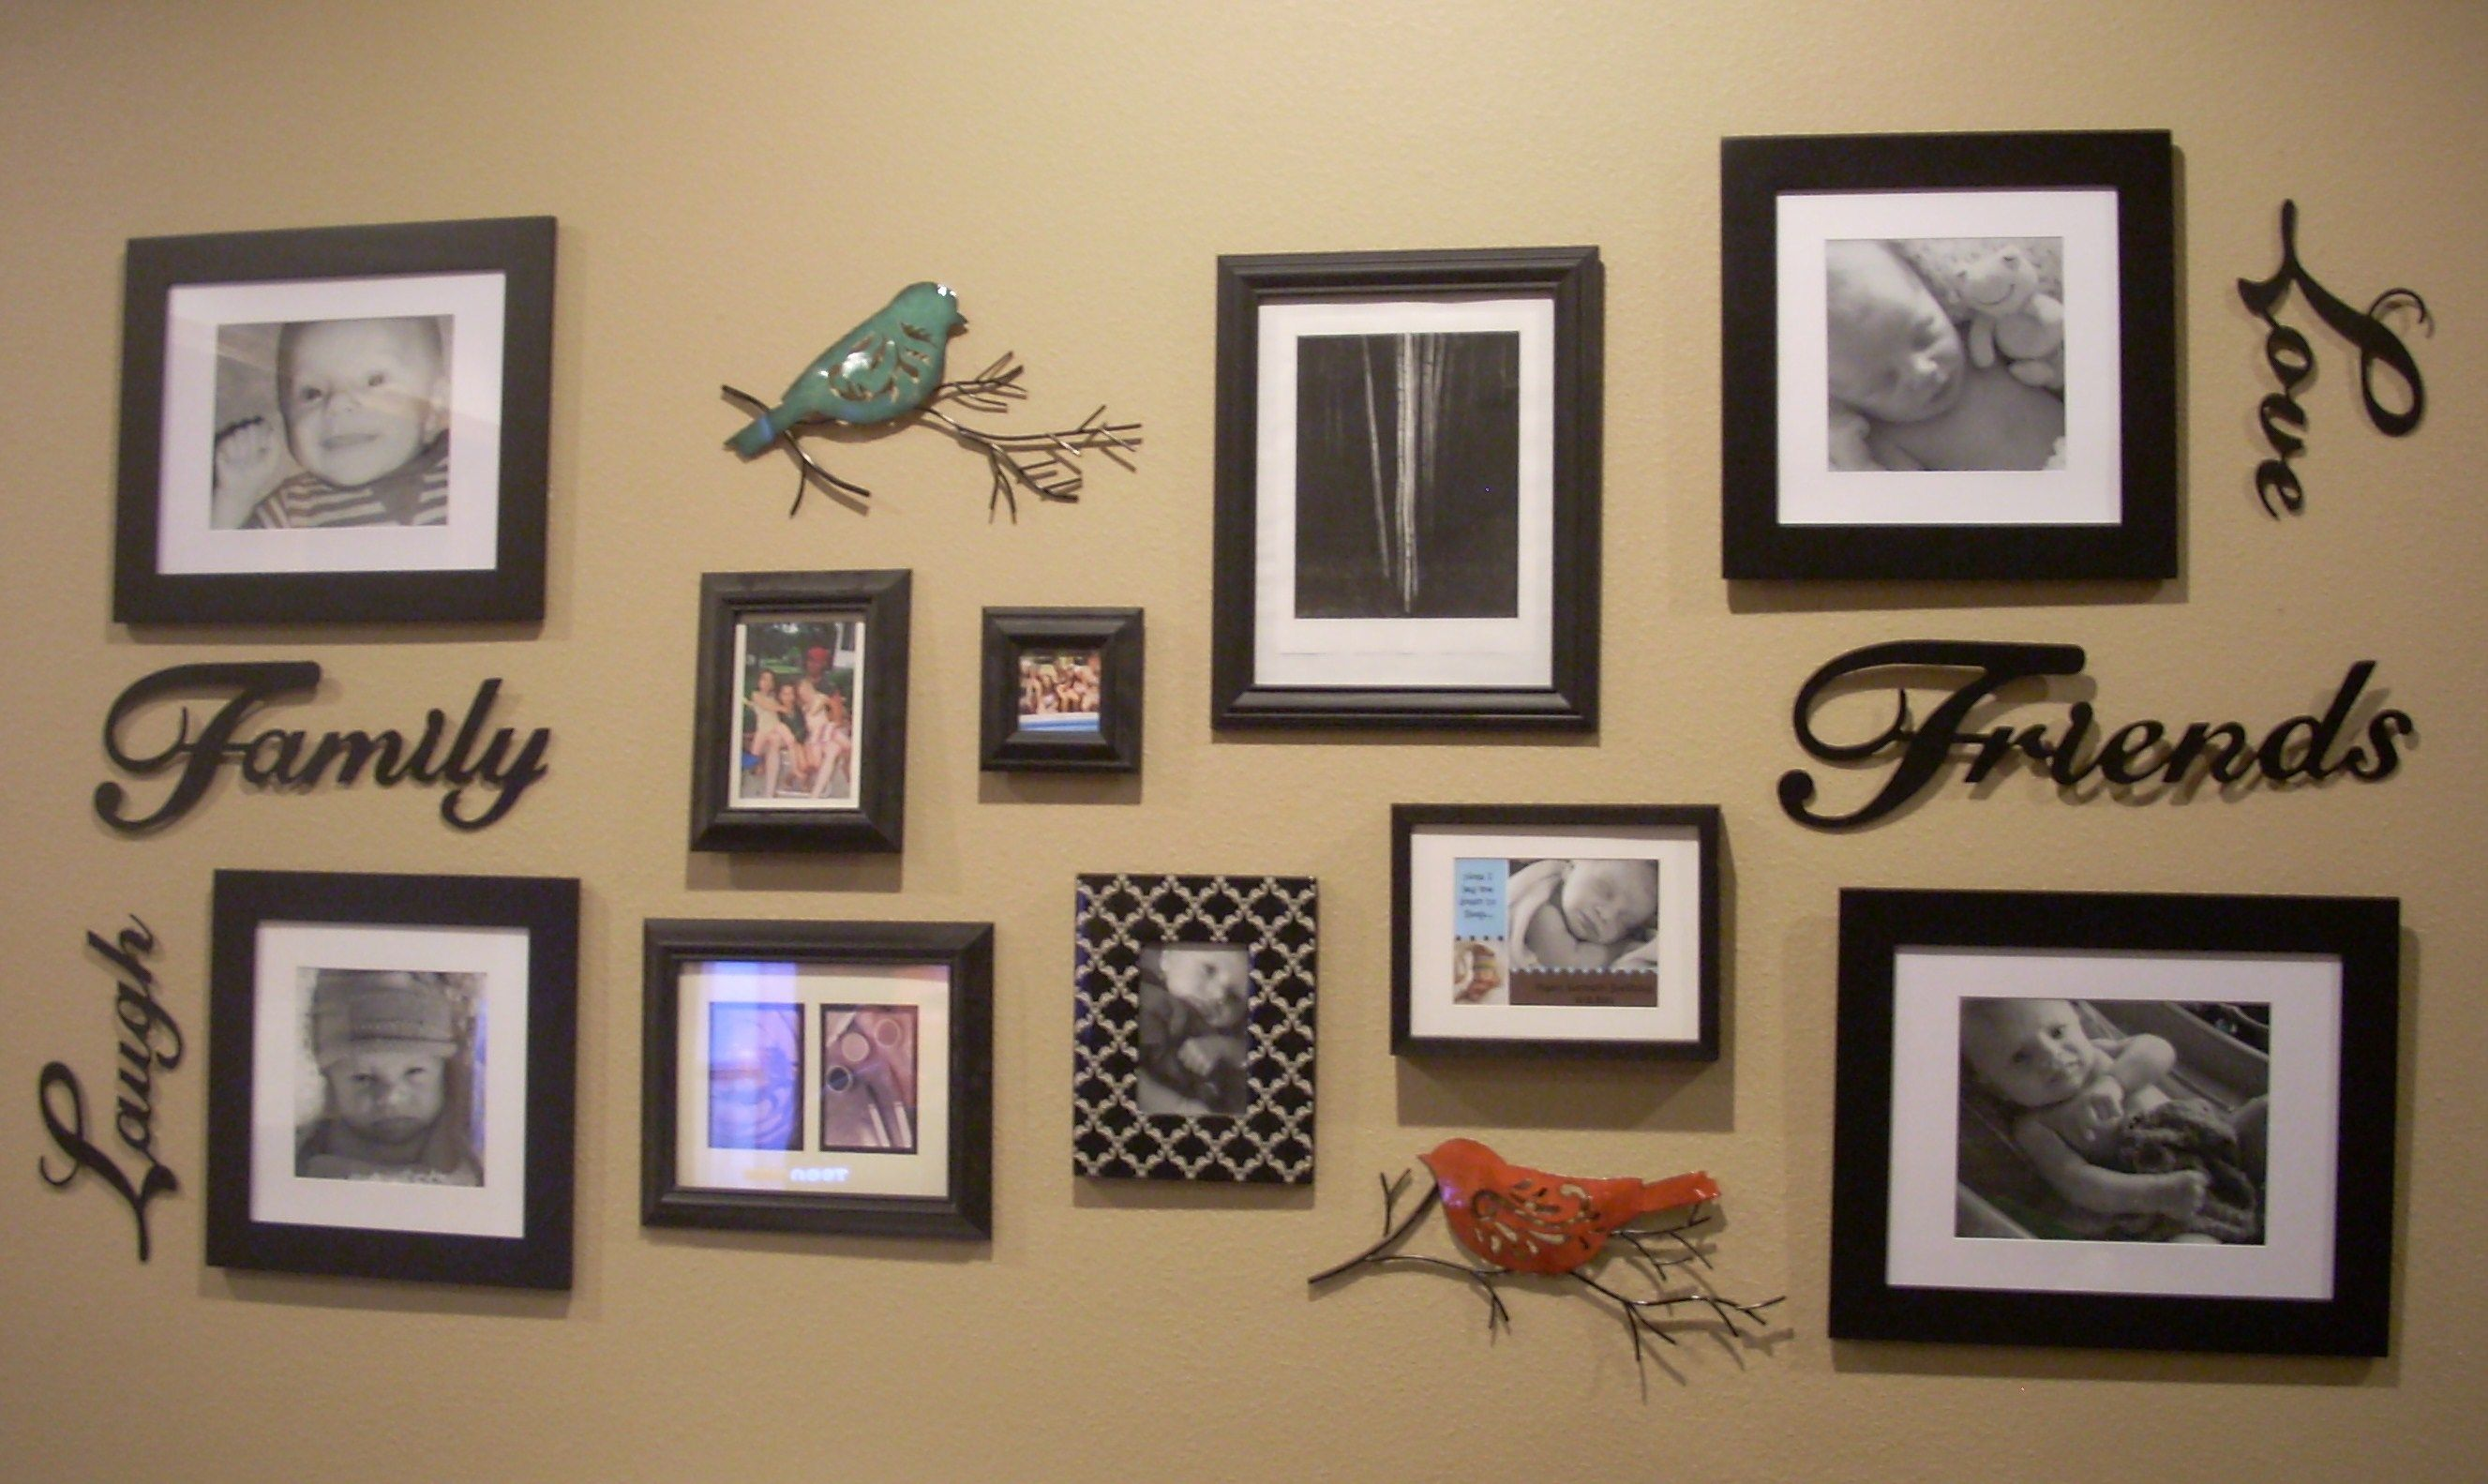 Frame Collage Mixed With Some Fun Accents Hanging Words Horizontally